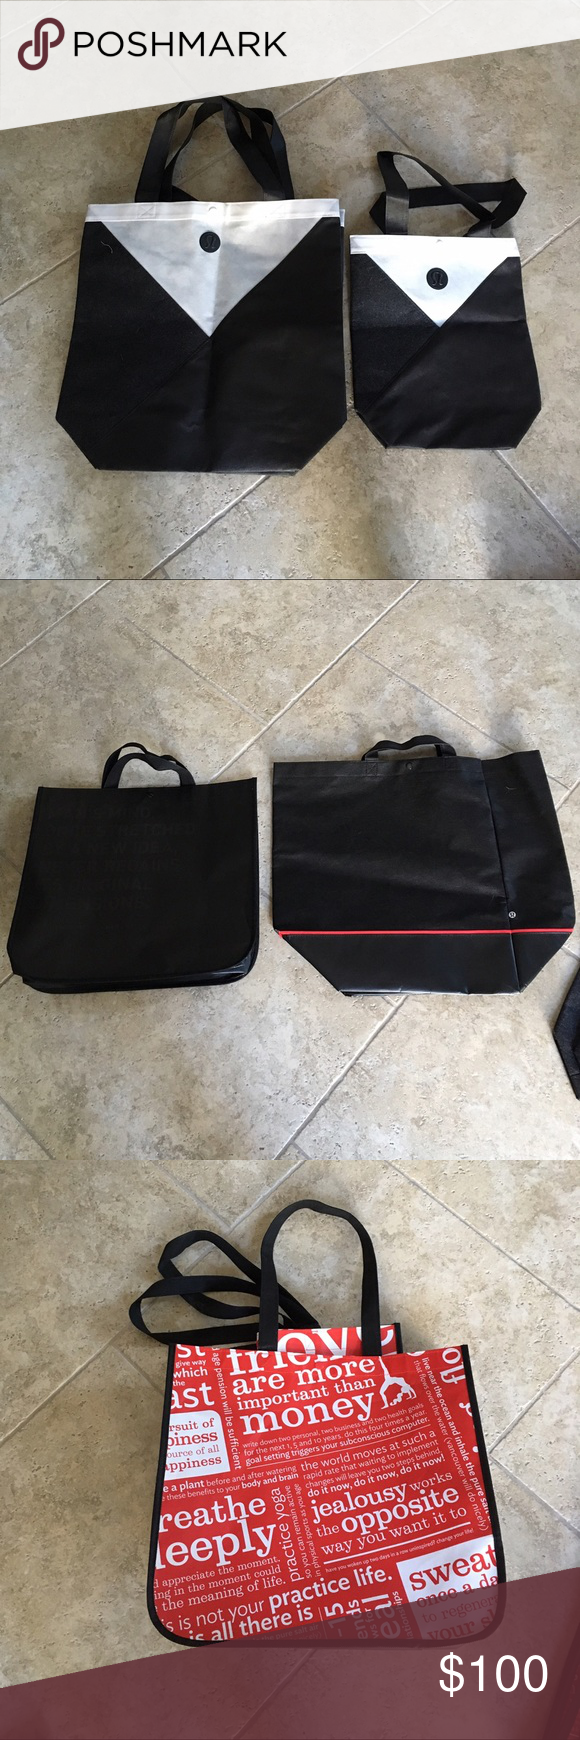 Reuseable lulu totes 1 Large Solid black plastic (2nd pic)                                       1 Large Canvas Black with Red Stripe (2nd pic)            6 Small Plastic Red and White (1st pic)                  Tell me what you want and we'll agree on price and I'll create a custom bundle for you! Or the entire listing for $20 lululemon athletica Bags Totes